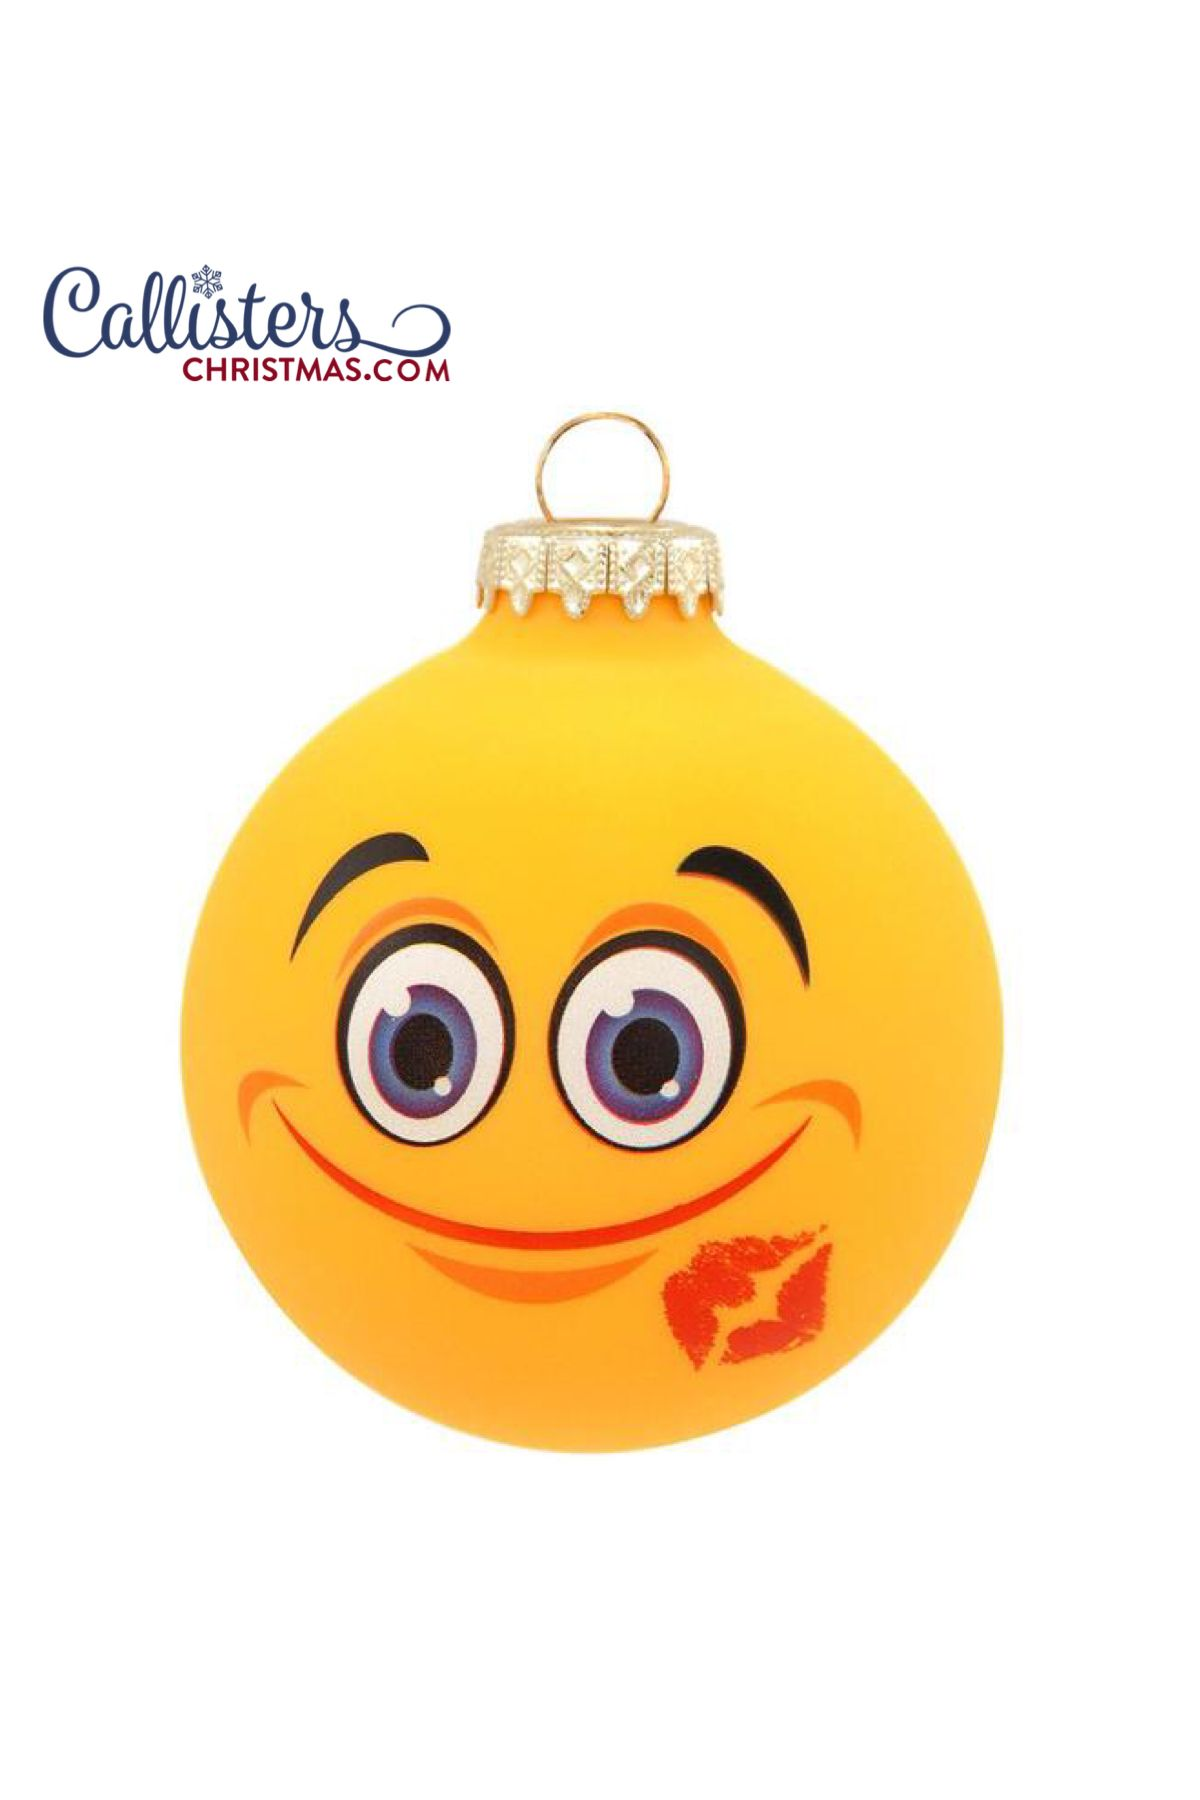 Kiss Face Emoji Ornament Kiss Face How To Make Ornaments Personalized Christmas Ornaments